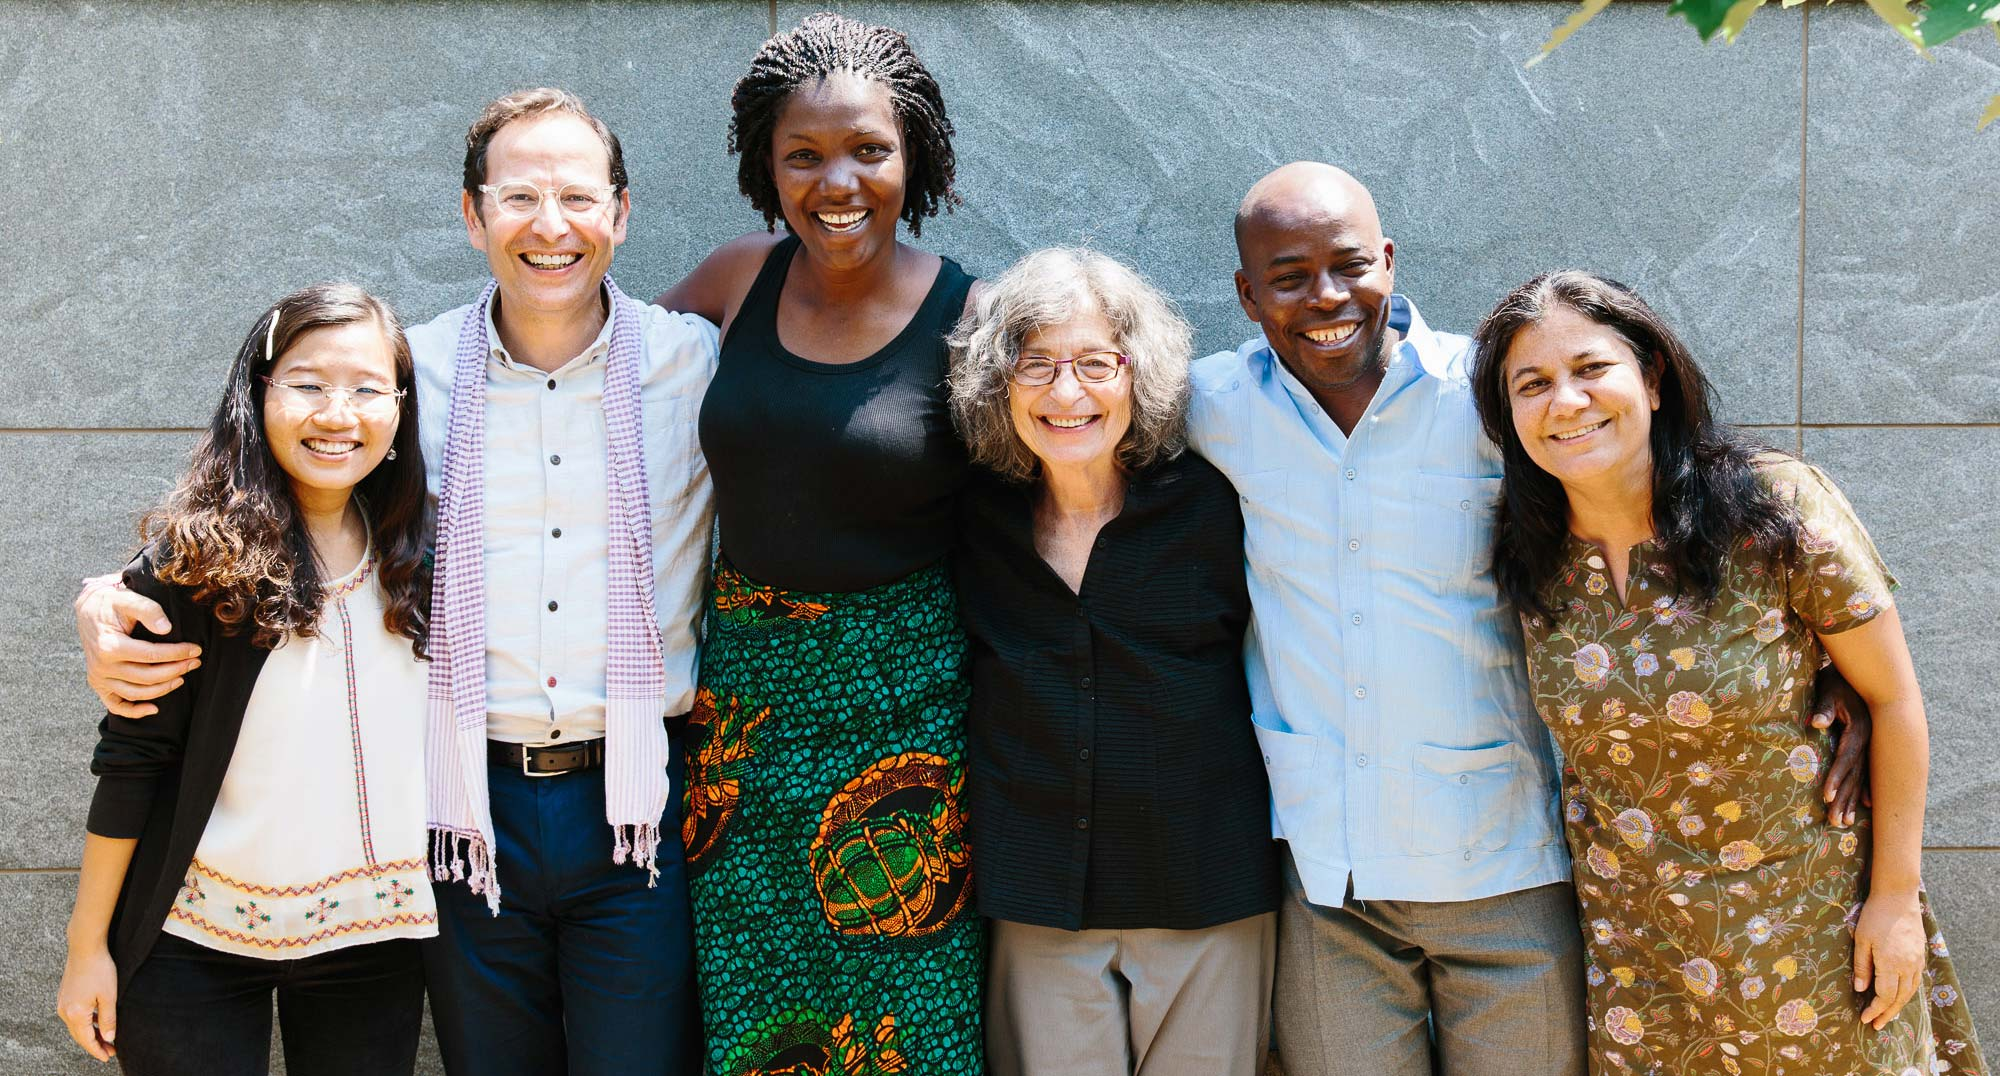 Left to right: Ah Noh, Robert, Caroline, Barbara, Boumba and Praneeta